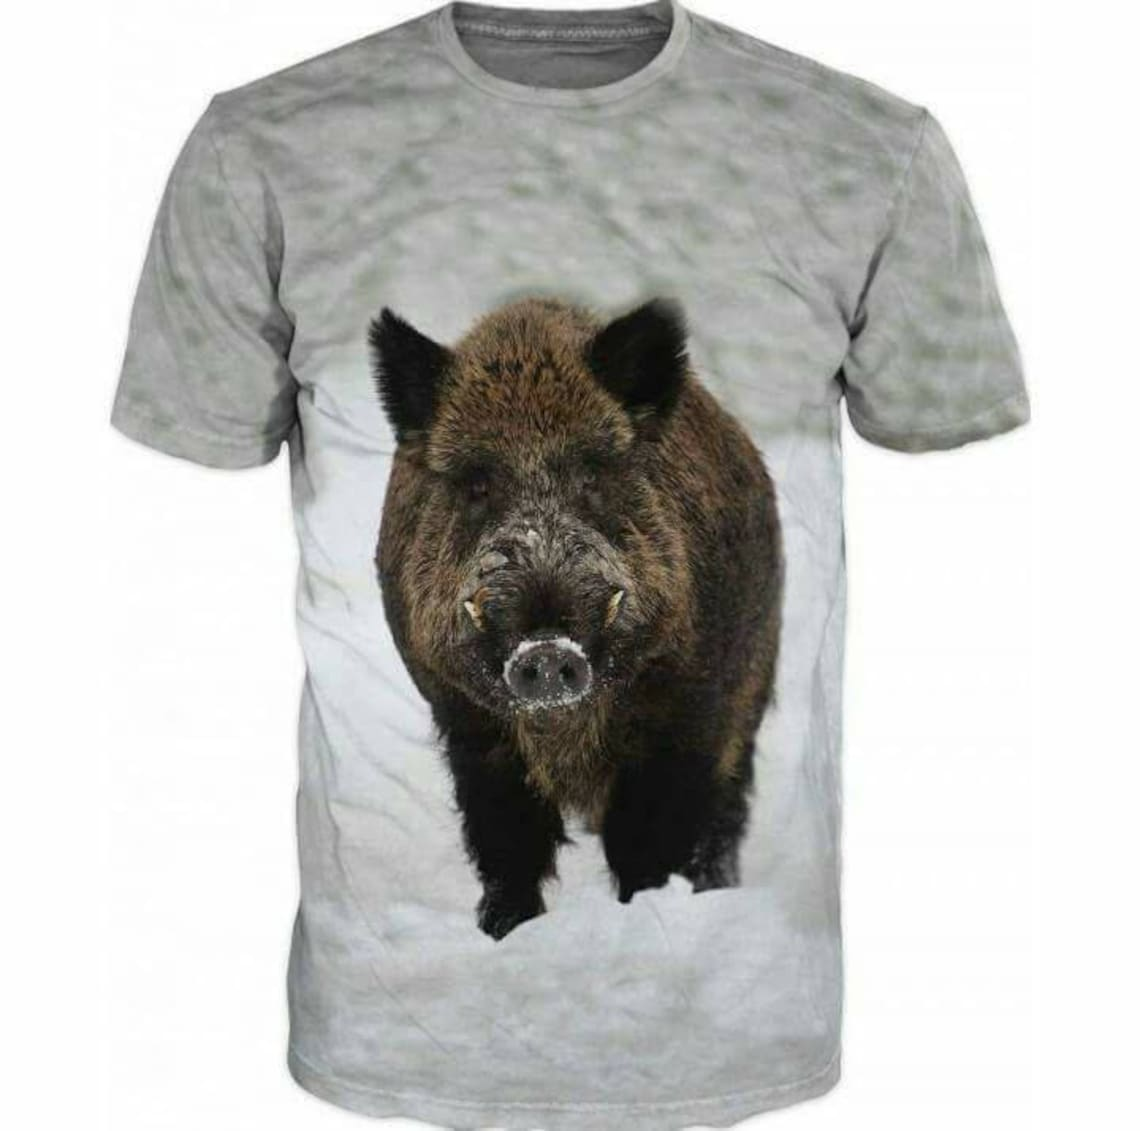 3d Shirts For Men Hunting Boar Wild Boar Print Funny T Shirt Etsy